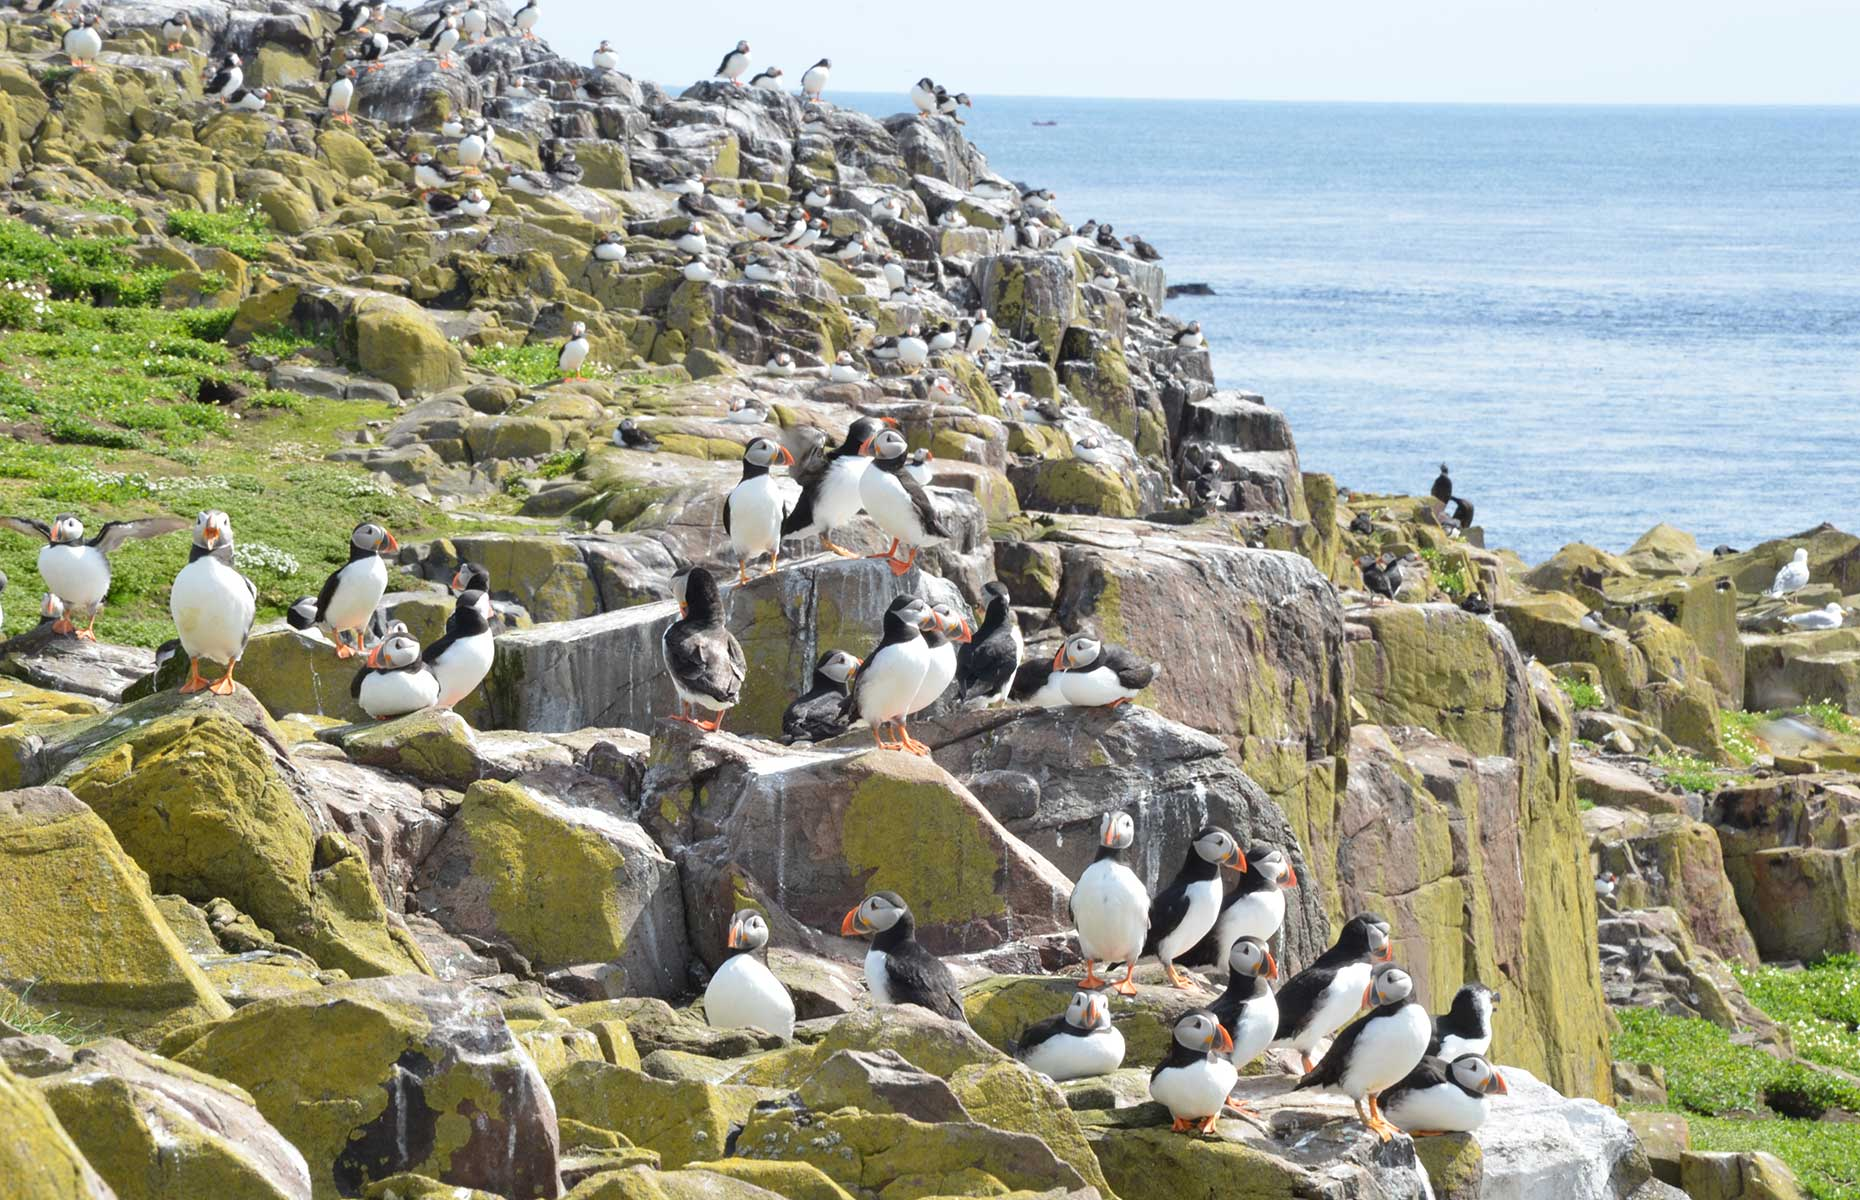 A puffin colony on Farne Islands